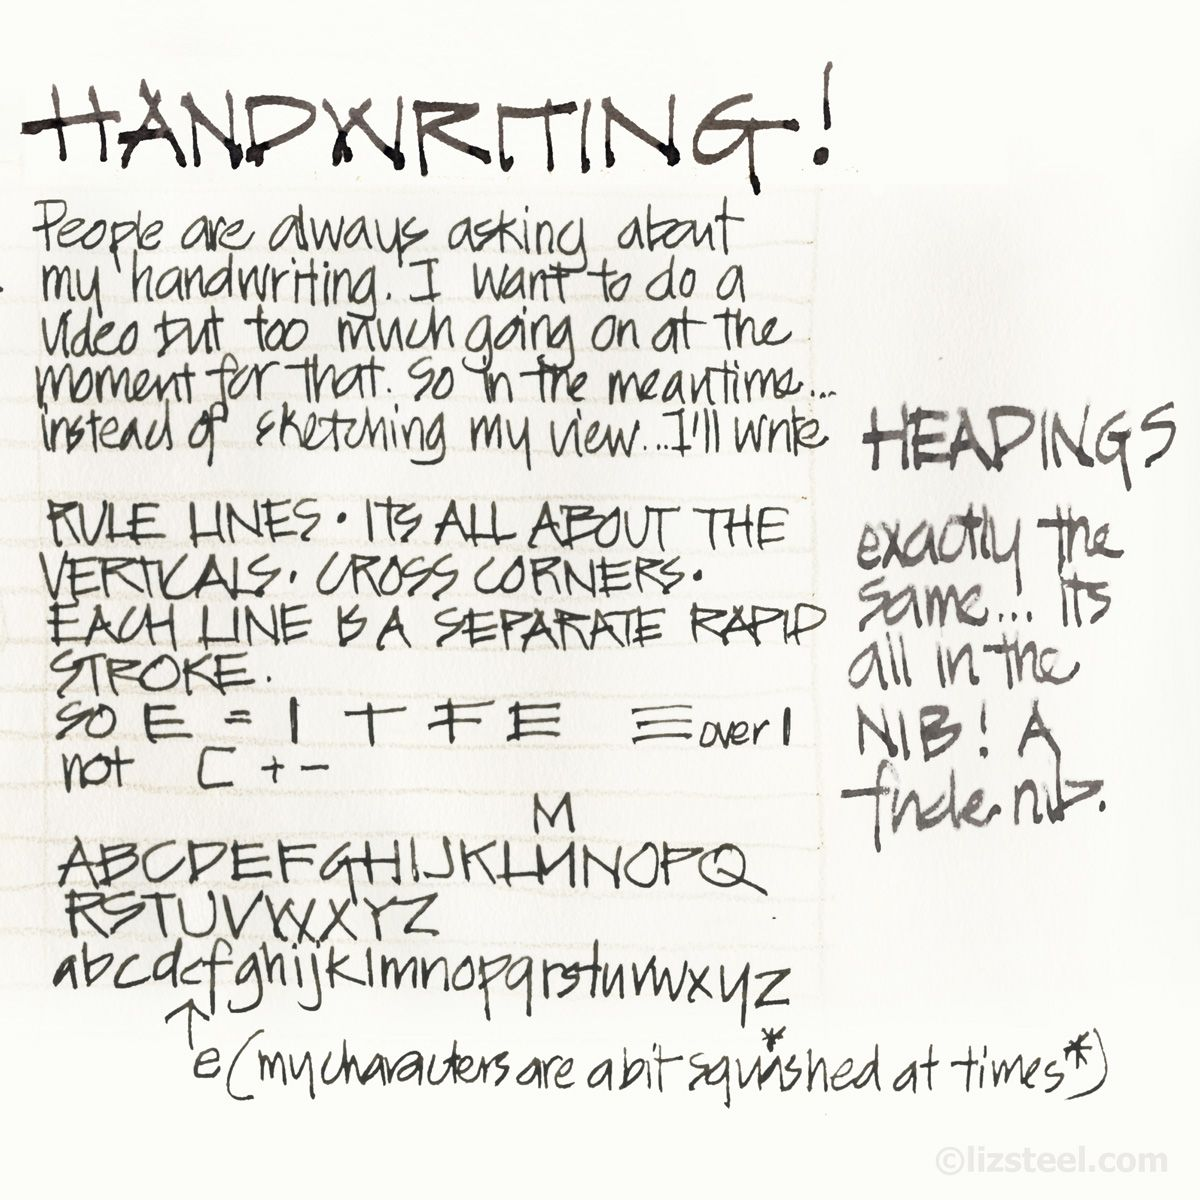 I get asked ALL the time for something about my handwriting. And I